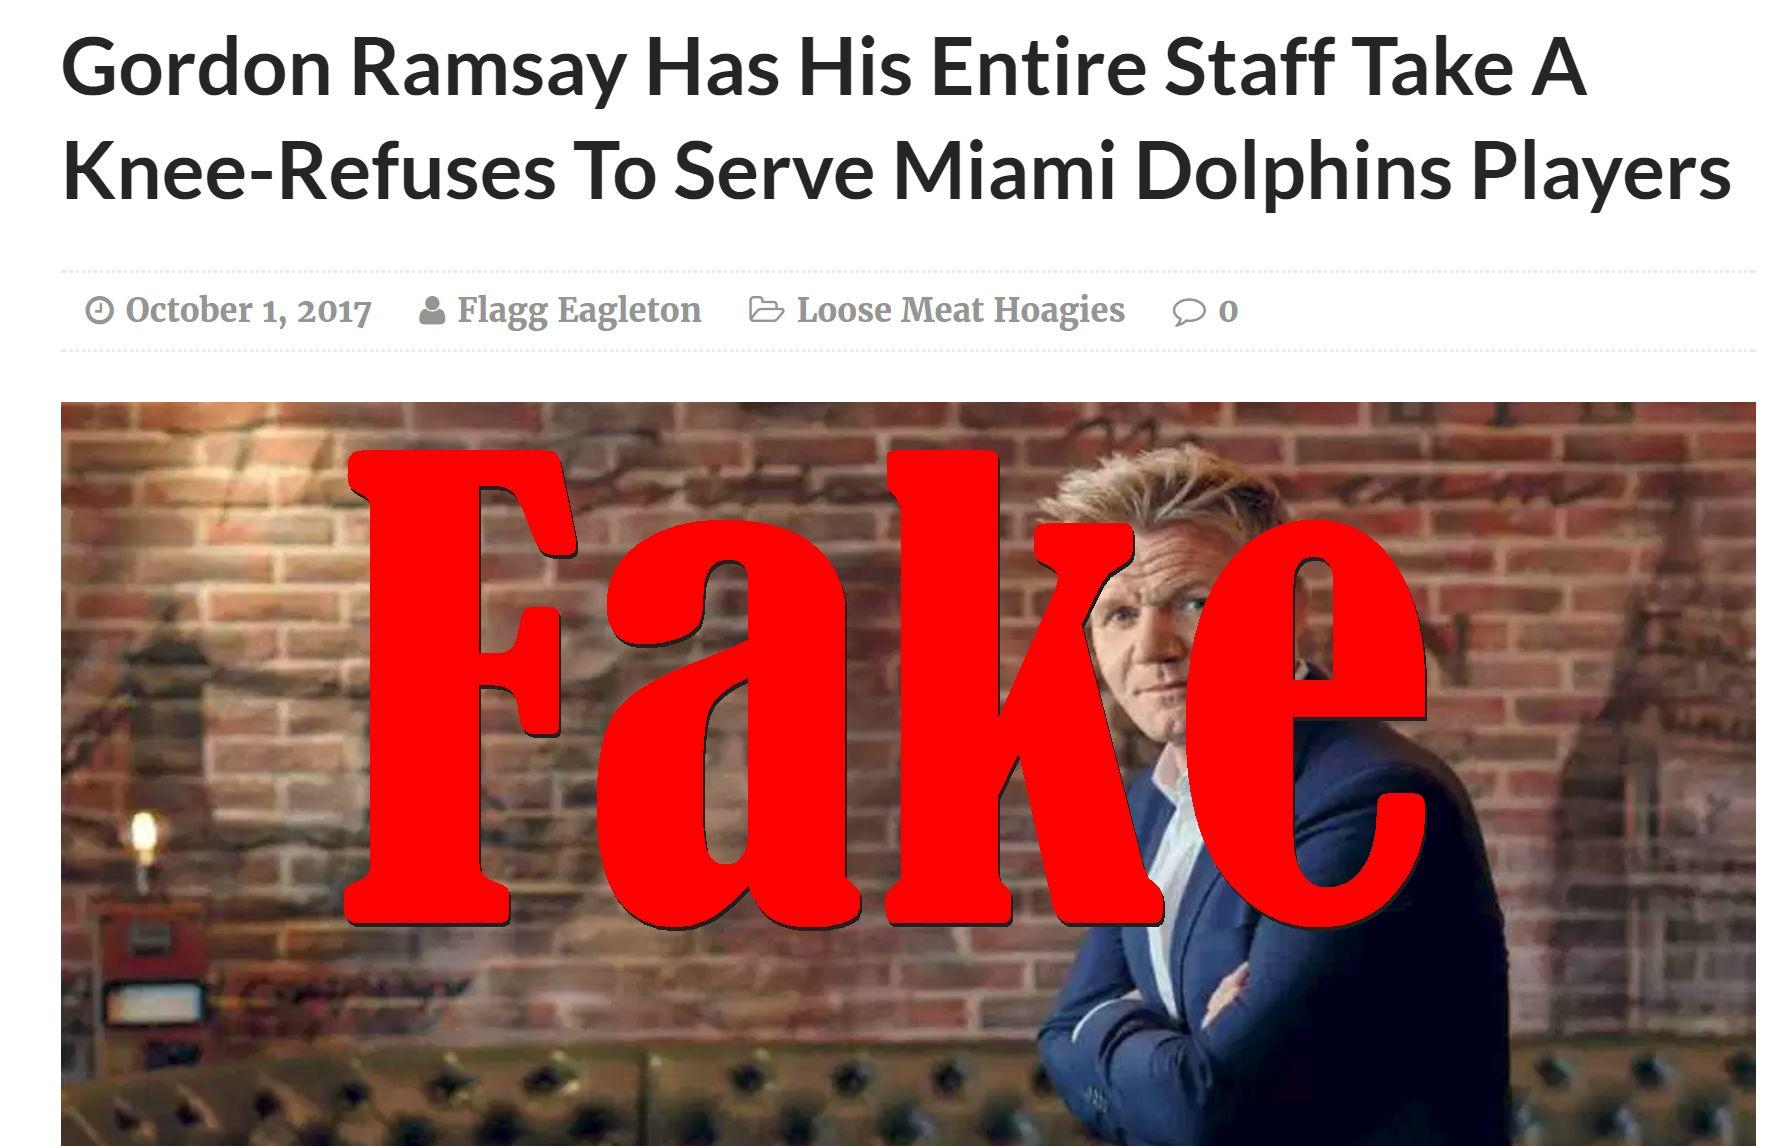 Fake News: Gordon Ramsay Did NOT Have Staff Take A Knee, Did NOT Refuse To Serve Miami Dolphins Players